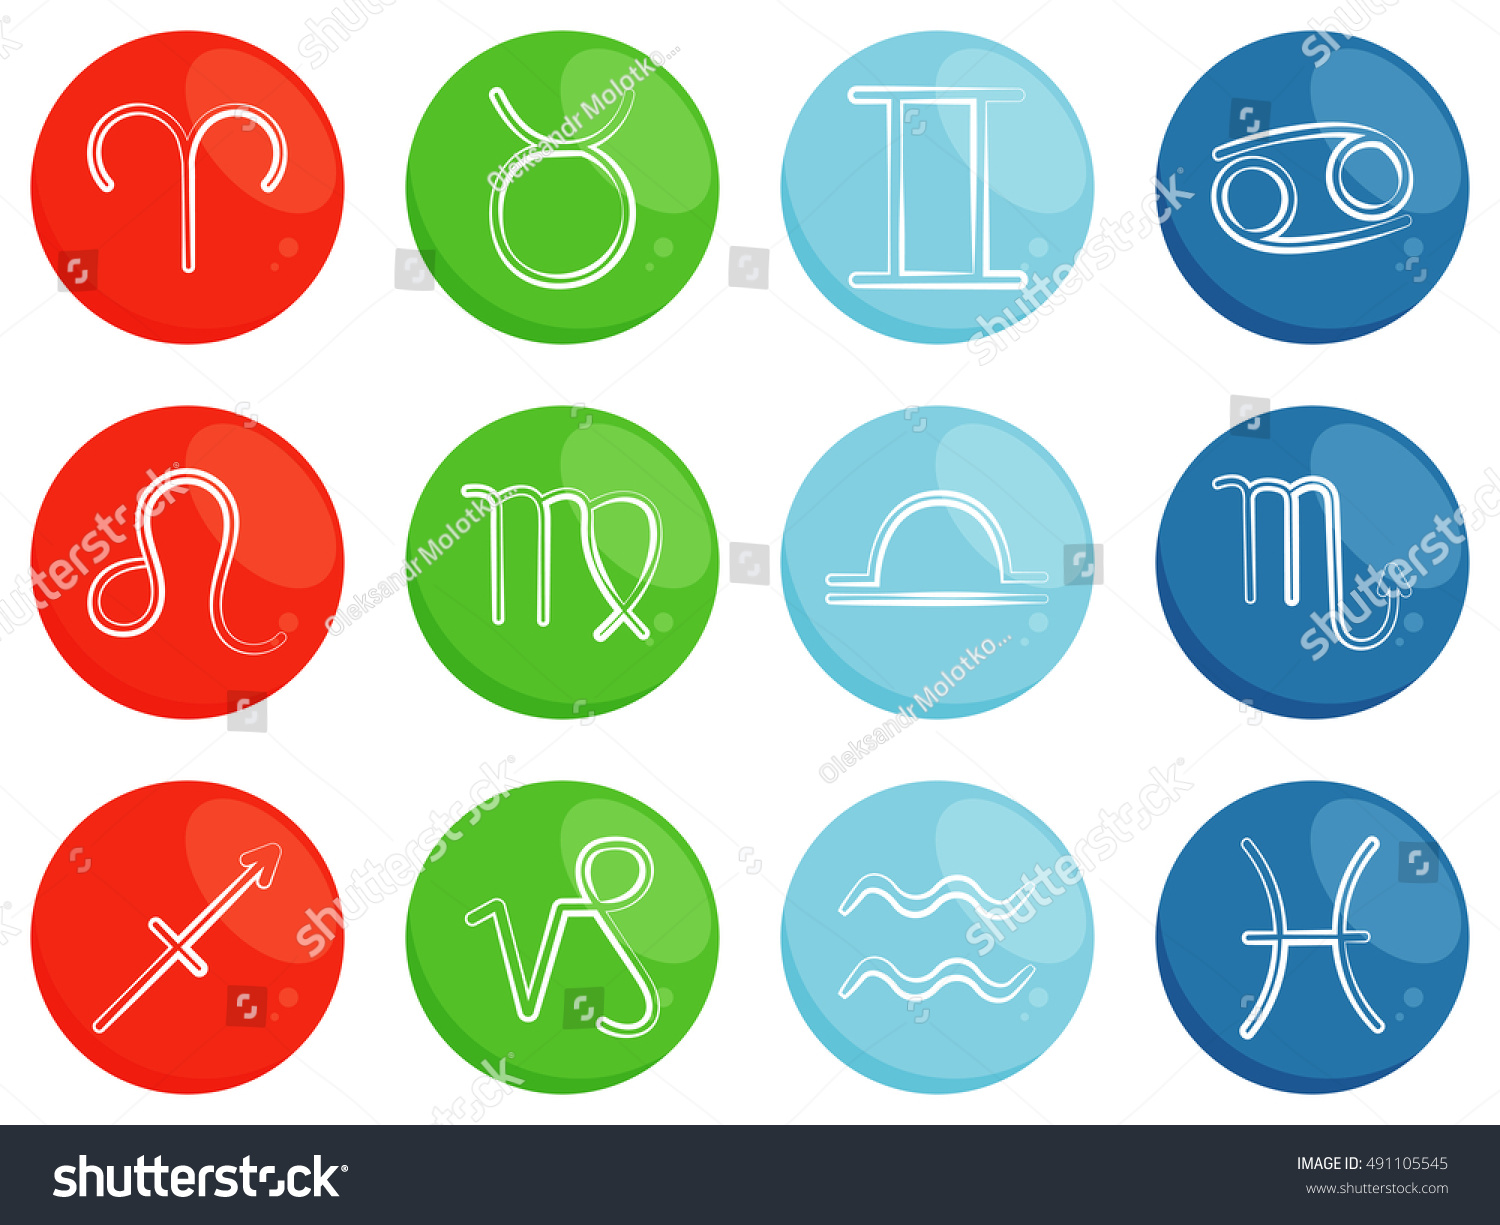 Symbols horoscope zodiac signs sorted by stock vector 491105545 symbols of horoscope zodiac signs sorted by four elements fire earth air buycottarizona